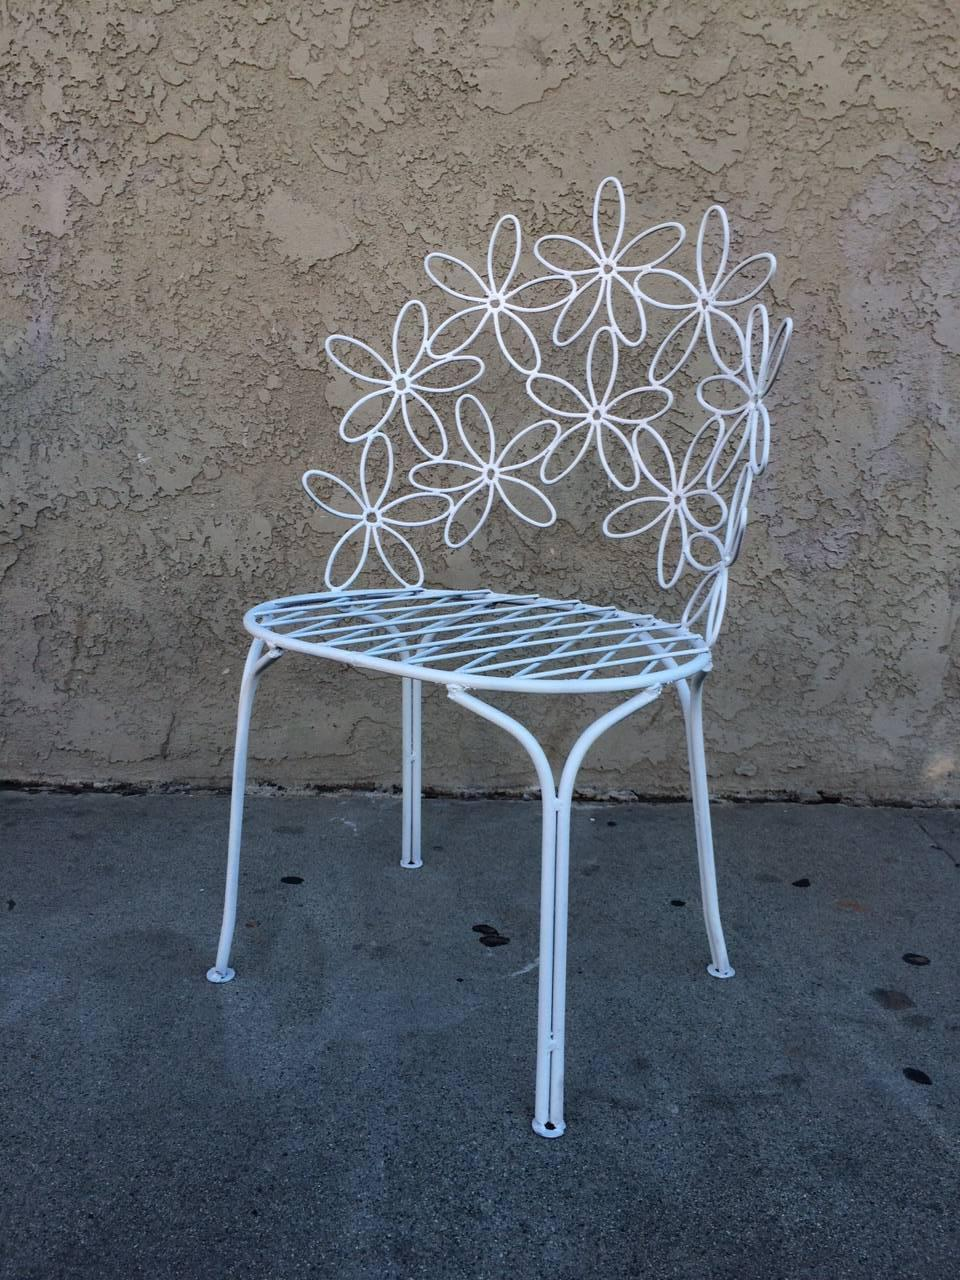 Charming Wrought Iron Patio Chairs and Table For Sale at 1stdibs